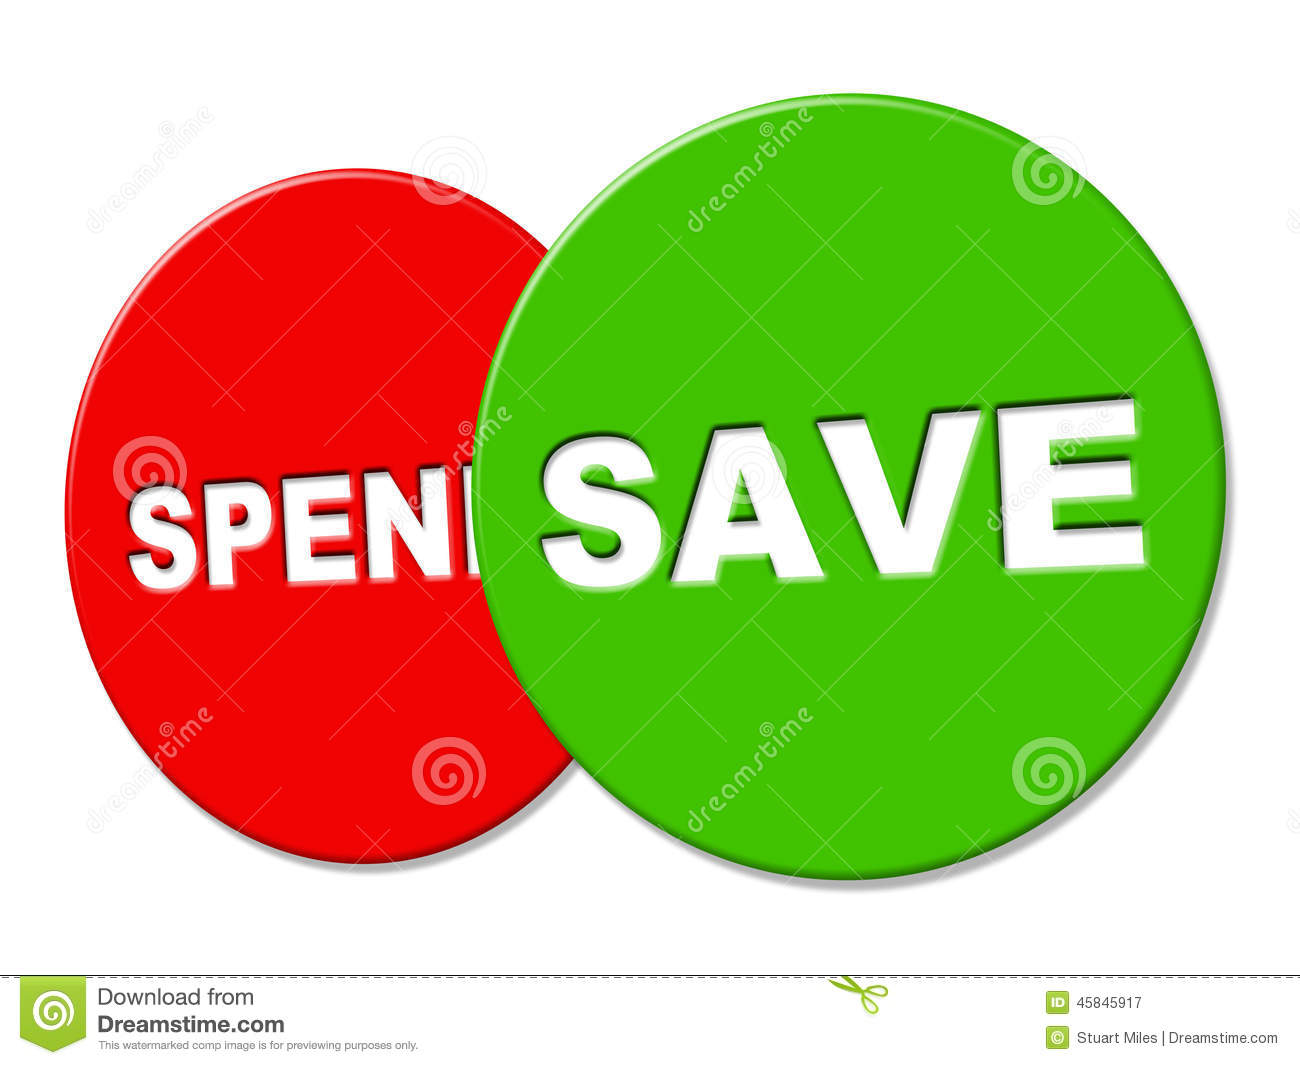 save-sign-indicates-placard-advertisement-investment-showing-finances-wealthy-45845917.jpg